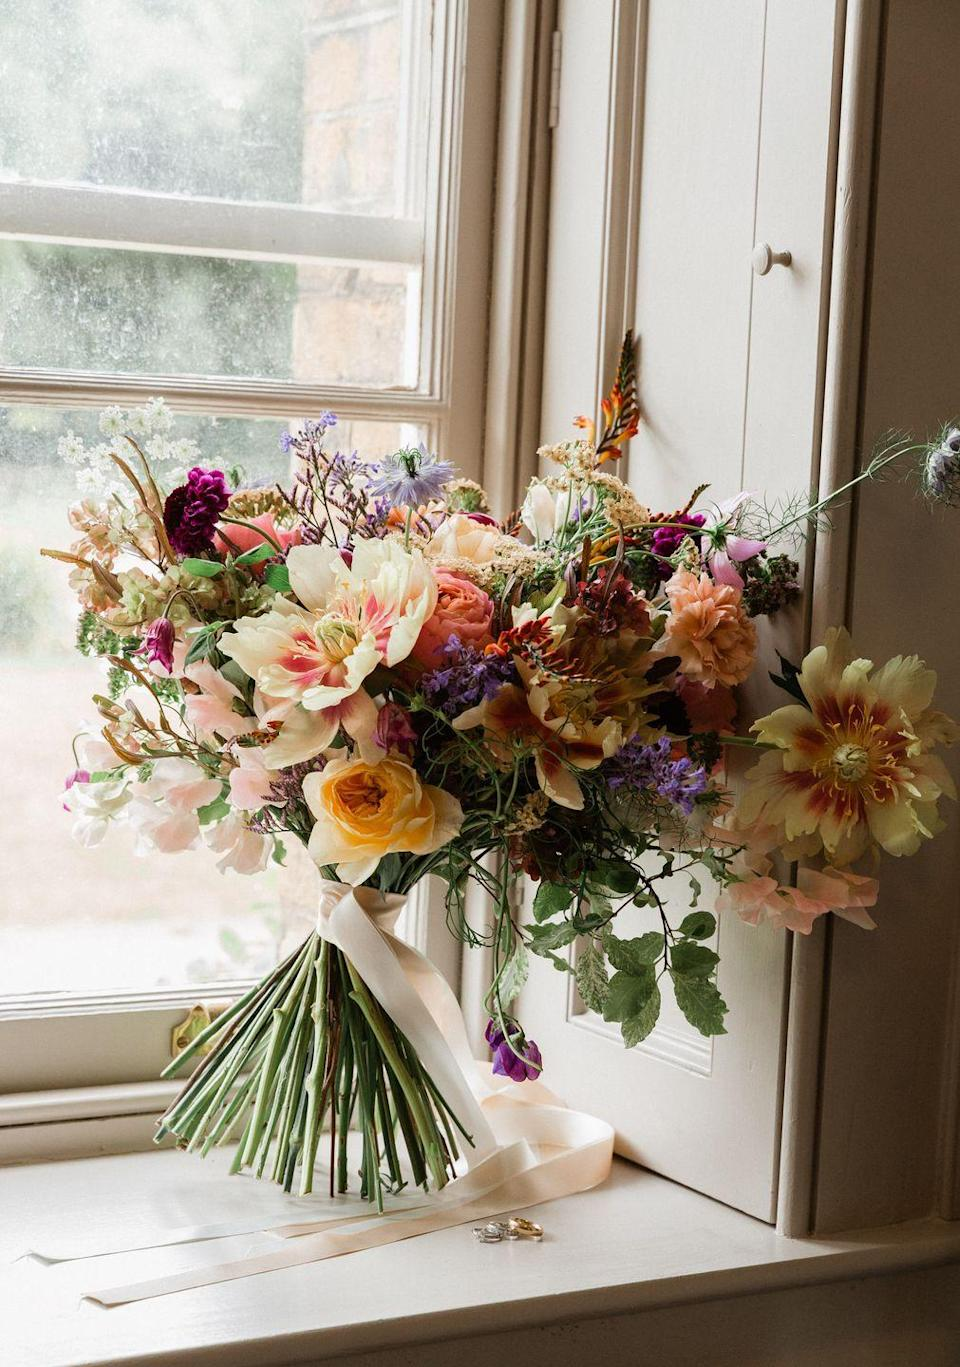 """<p>Founded in 2020 by florists Mairead and Athena, the experts have created one of the most famous London spots in London for those in need of blooming beautiful blooms. Having worked with <a href=""""https://www.elle.com/uk/fashion/a26379194/gigi-hadid-hits-the-burberry-runway-for-her-first-london-fashion-week-show/"""" rel=""""nofollow noopener"""" target=""""_blank"""" data-ylk=""""slk:Burberry"""" class=""""link rapid-noclick-resp"""">Burberry</a>, Calvin Klein, Dior and <a href=""""https://www.elle.com/uk/fashion/a22662683/stella-mccartney-not-done-fighting/"""" rel=""""nofollow noopener"""" target=""""_blank"""" data-ylk=""""slk:Stella McCartney"""" class=""""link rapid-noclick-resp"""">Stella McCartney</a>, Rebel Rebel – which won the Gold Award Chelsea In Bloom 2019 - is one of the most fashion-forward brands when it comes to marrying creativity, catwalk and foliage.</p><p>Creating everything from table displays, wall and ceilings hangings, pocket flowers and bouquets for their primarily London-based clientele, the florists also have a cutting garden and Flower School based in Tuscany, Italy for those having a wedding in the sunshine.</p><p>Click <a href=""""https://www.rebelrebel.co.uk"""" rel=""""nofollow noopener"""" target=""""_blank"""" data-ylk=""""slk:here"""" class=""""link rapid-noclick-resp"""">here</a> to find out more.</p>"""